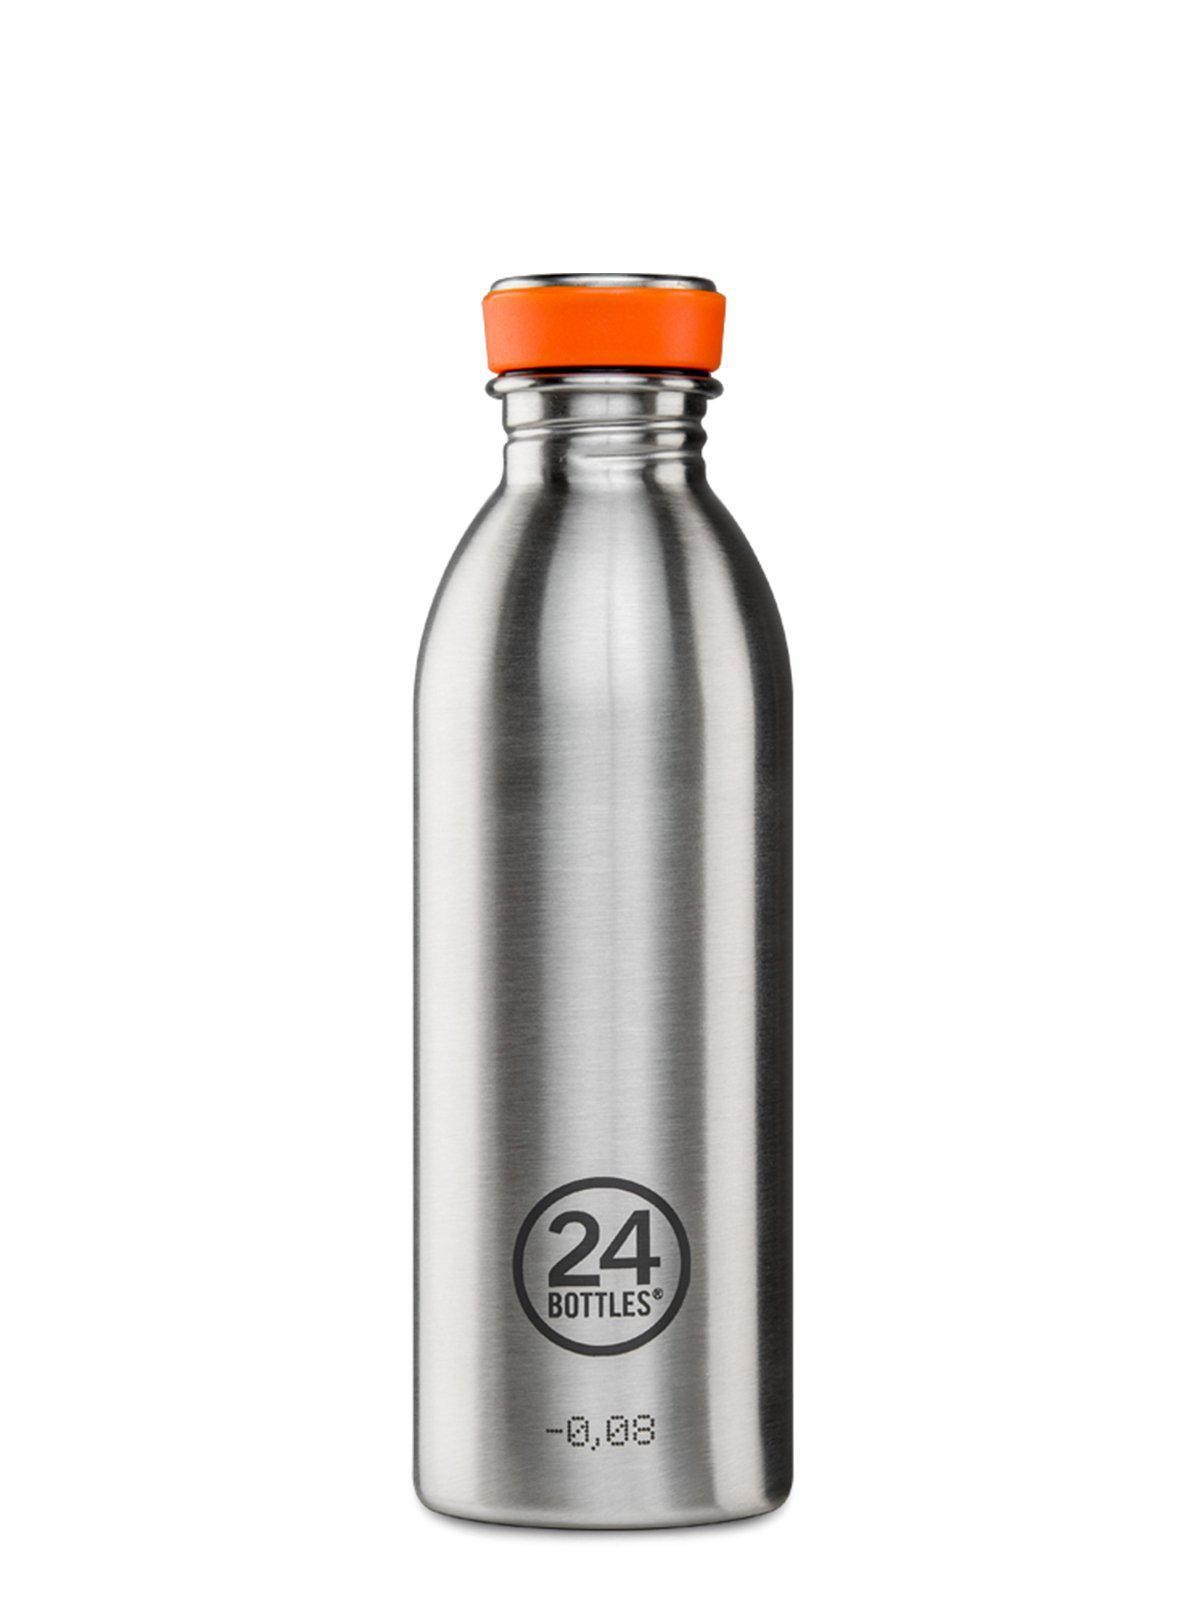 24Bottles Urban Bottle Steel 500ml - MORE by Morello - Indonesia